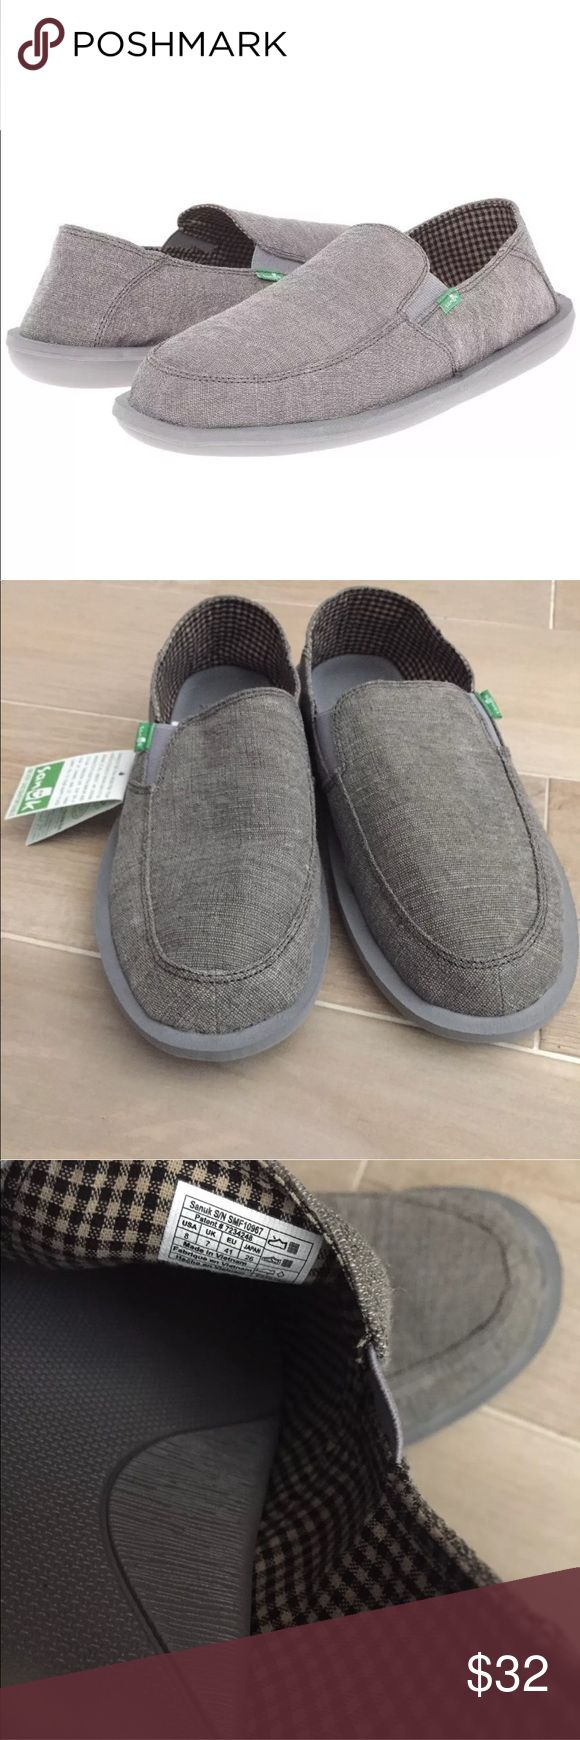 Men's Sanuk 8 Gray slip on casual shoes loafer Casual, stylish Gray Sanuk Slip on Shoes for Men Sanuk Shoes Loafers & Slip-Ons